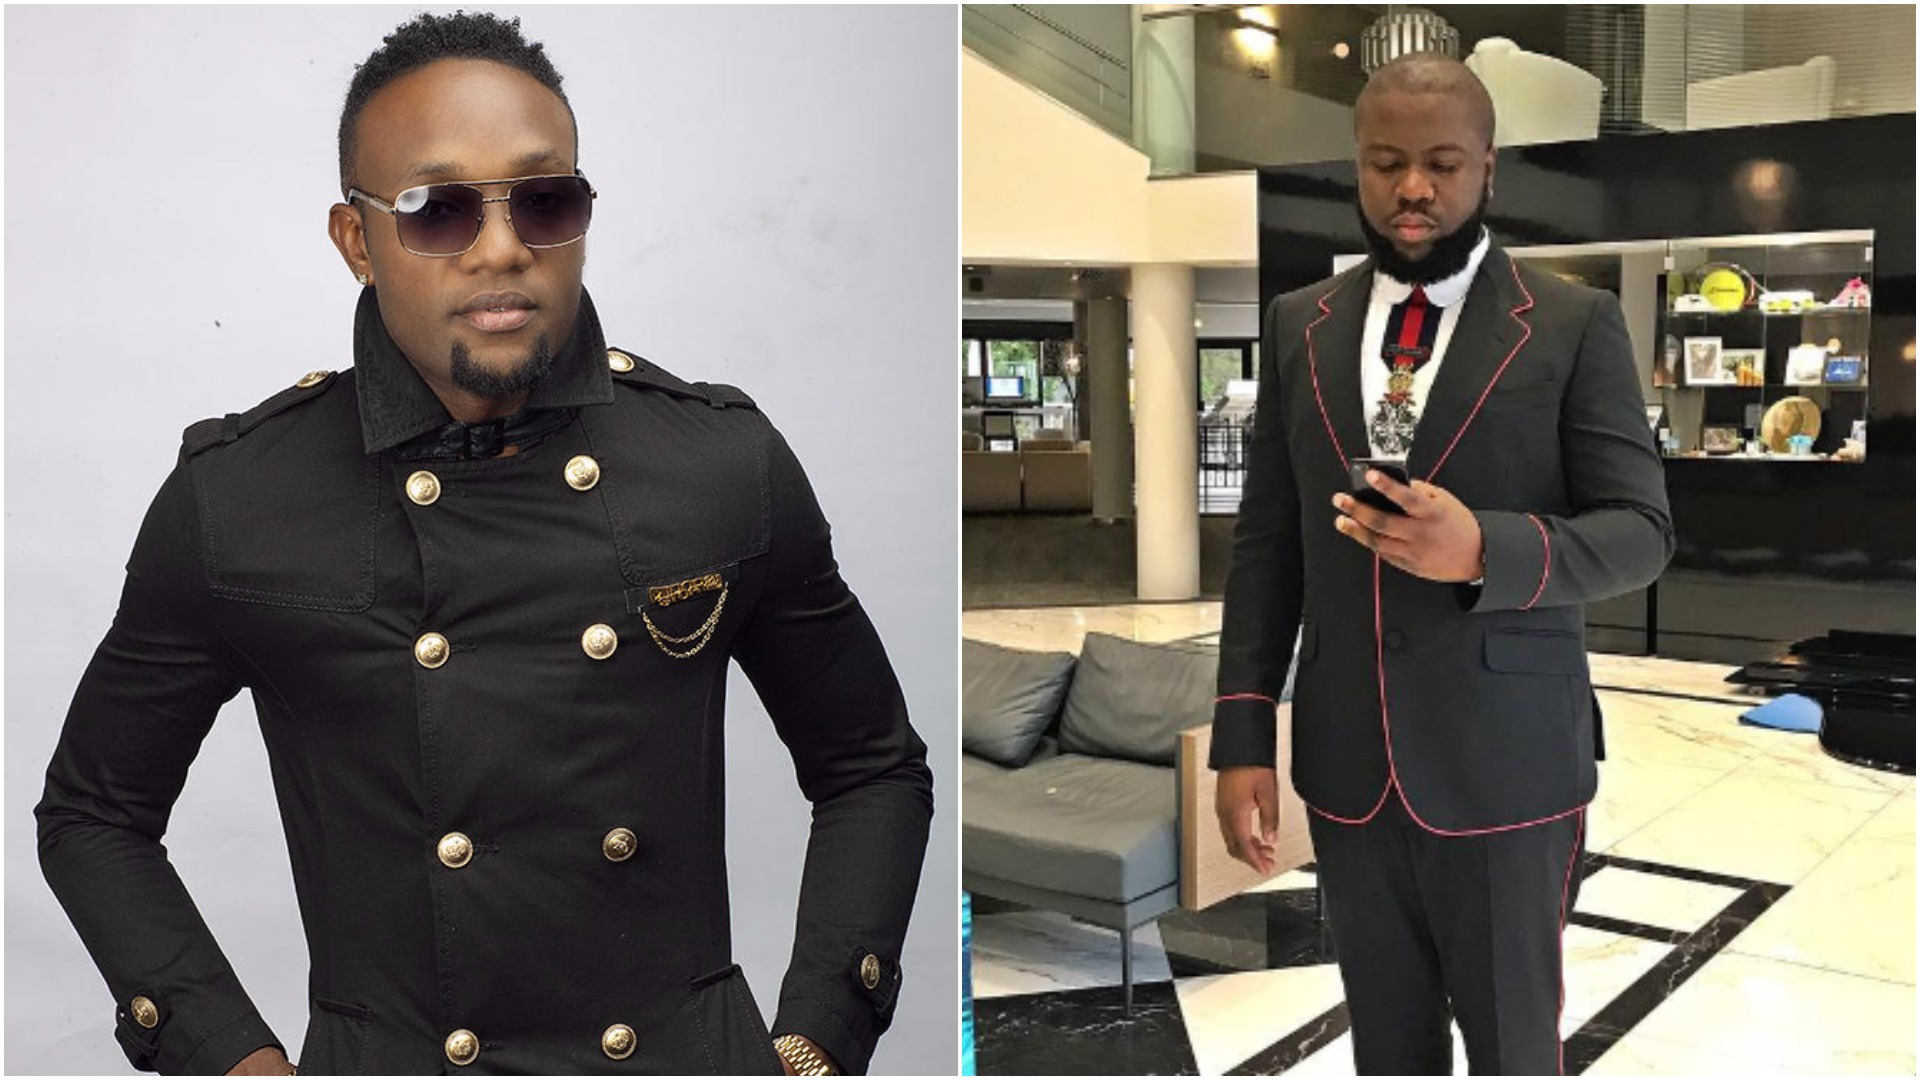 Talking About Hushpuppi Will Only Make Him More Popular- Kcee